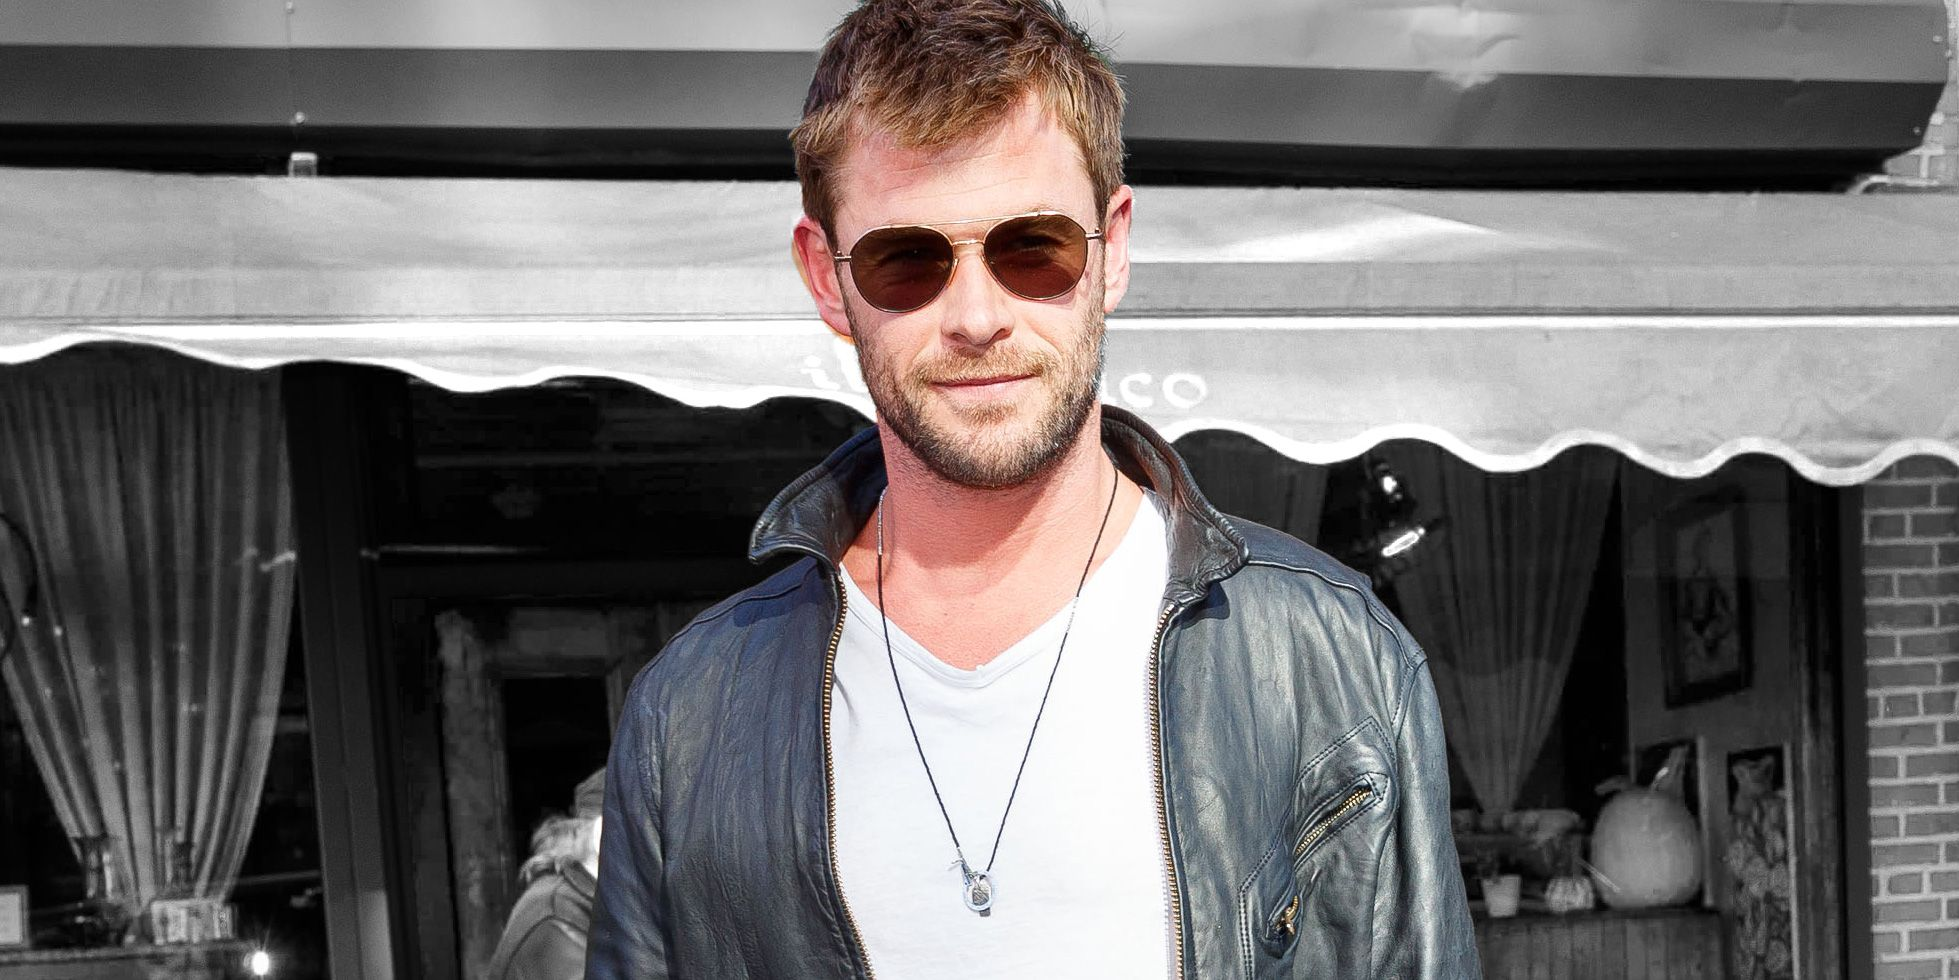 chris hemsworth, gafas sol, aviator, actor, thor, ragnarok, gafas sol aviator, chris hemsworth sunglasses, chris hemsworth gafas de sol